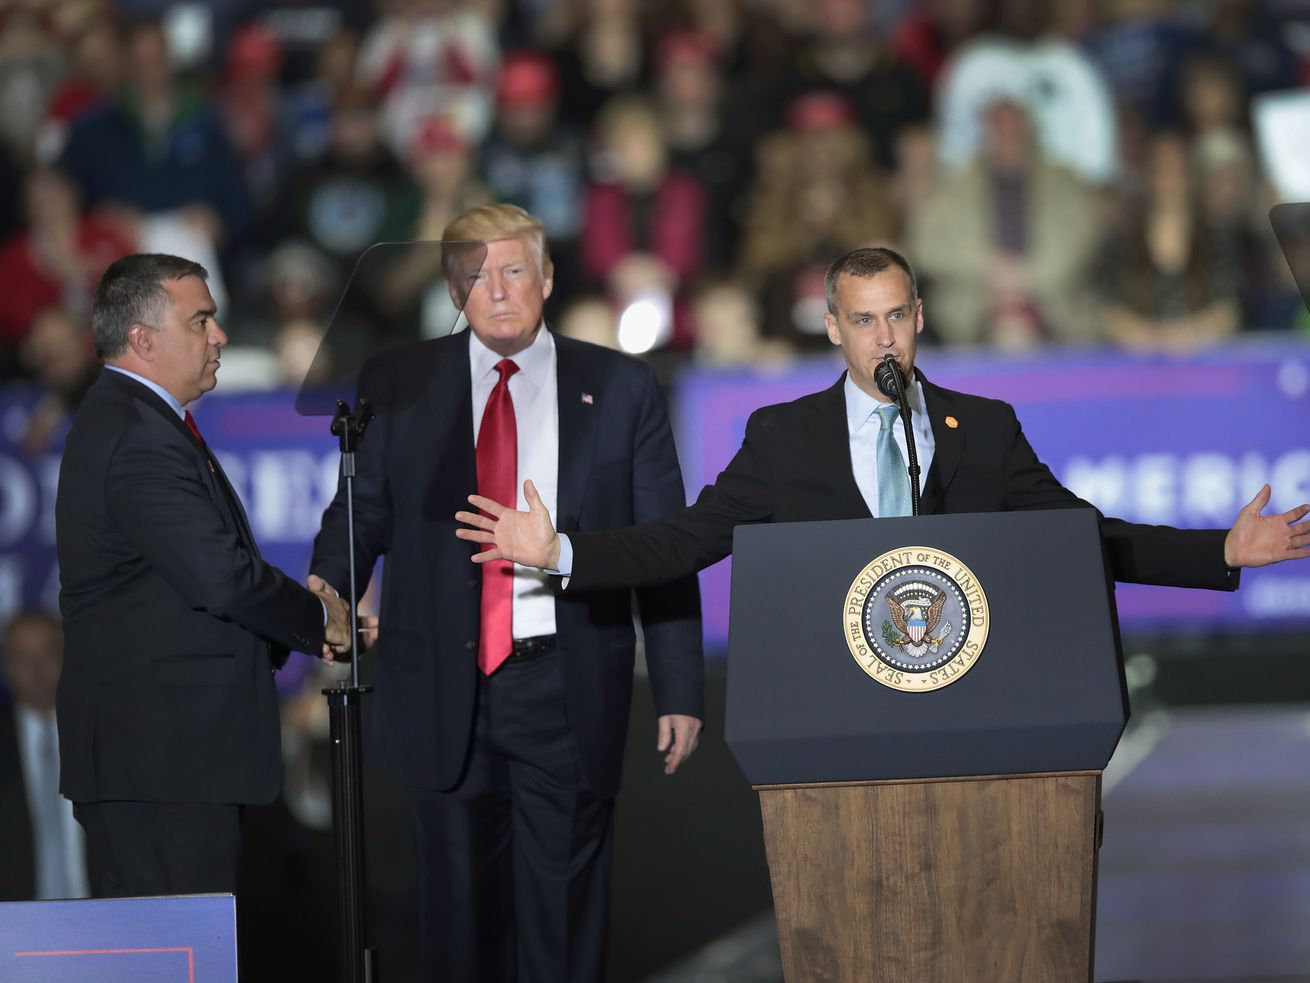 Corey Lewandowski, former campaign manager for President Donald Trump, stands alongside the president as he speaks at a campaign rally on April 28, 2018, in Washington, Michigan.